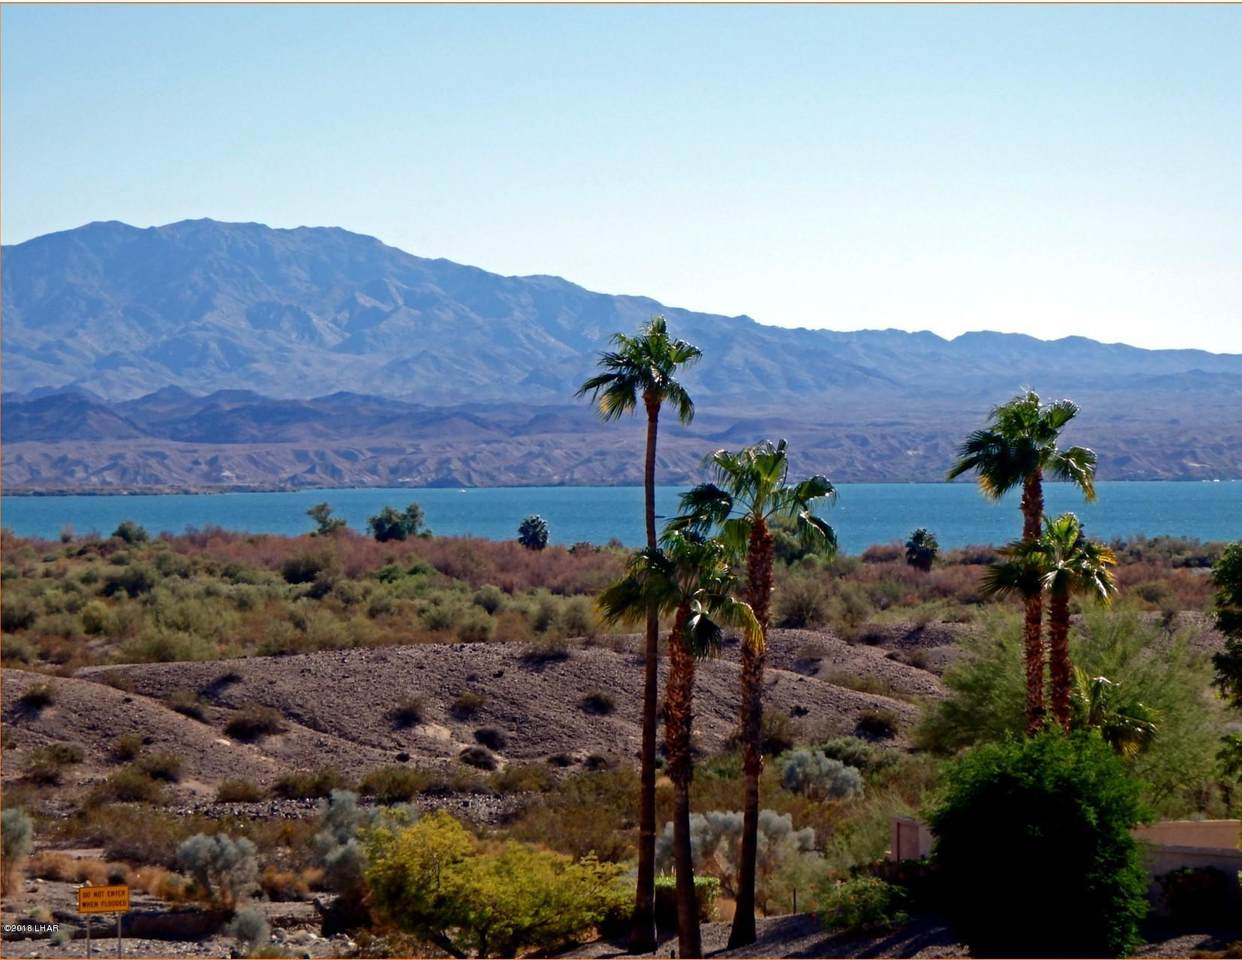 https://bt-photos.global.ssl.fastly.net/lakehavasu/1280_boomver_2_1014379-2.jpg